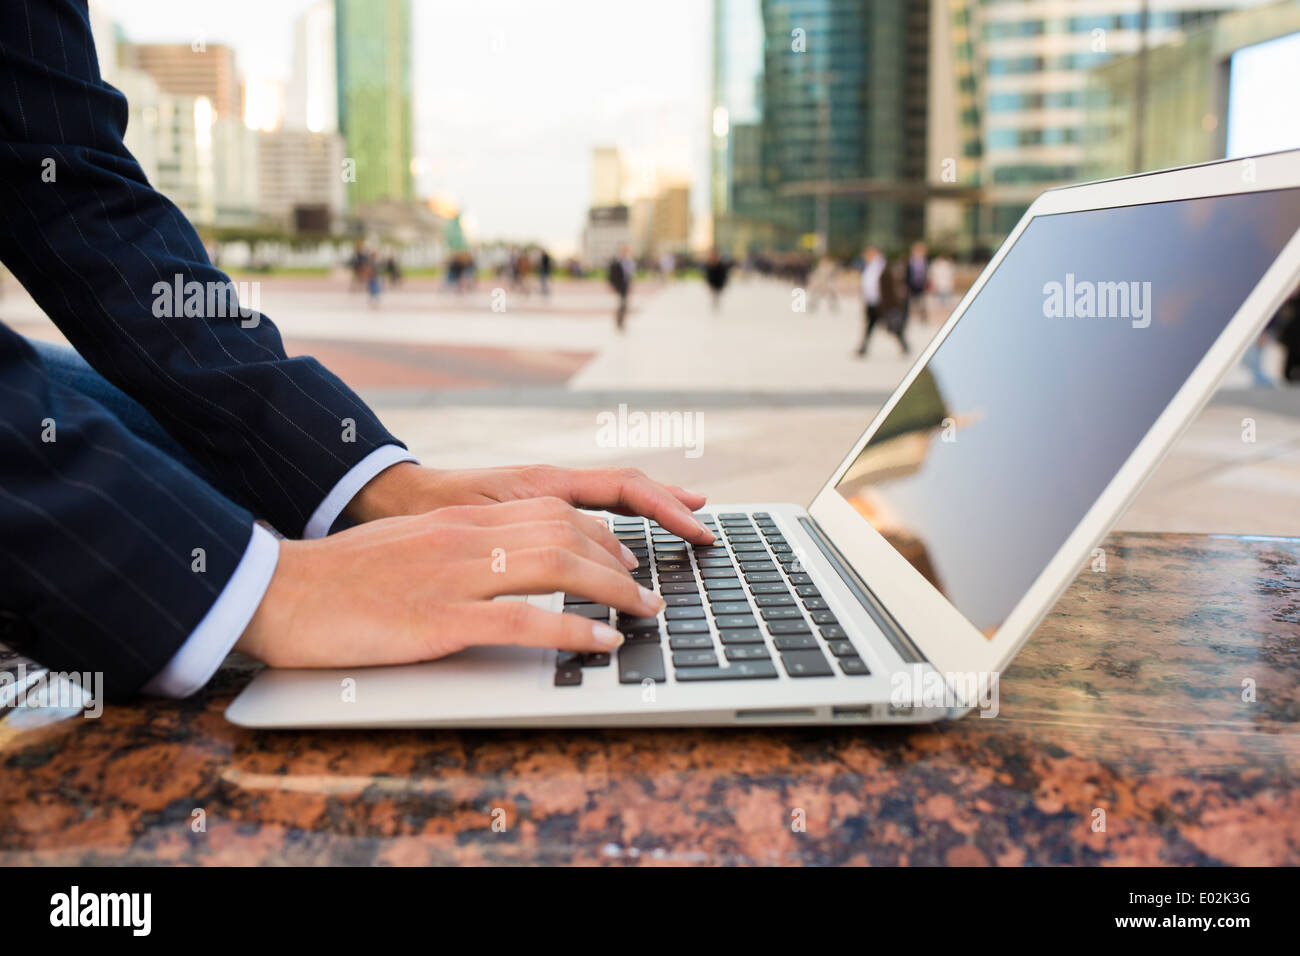 Female computer hand outdoor message sms e-mail - Stock Image